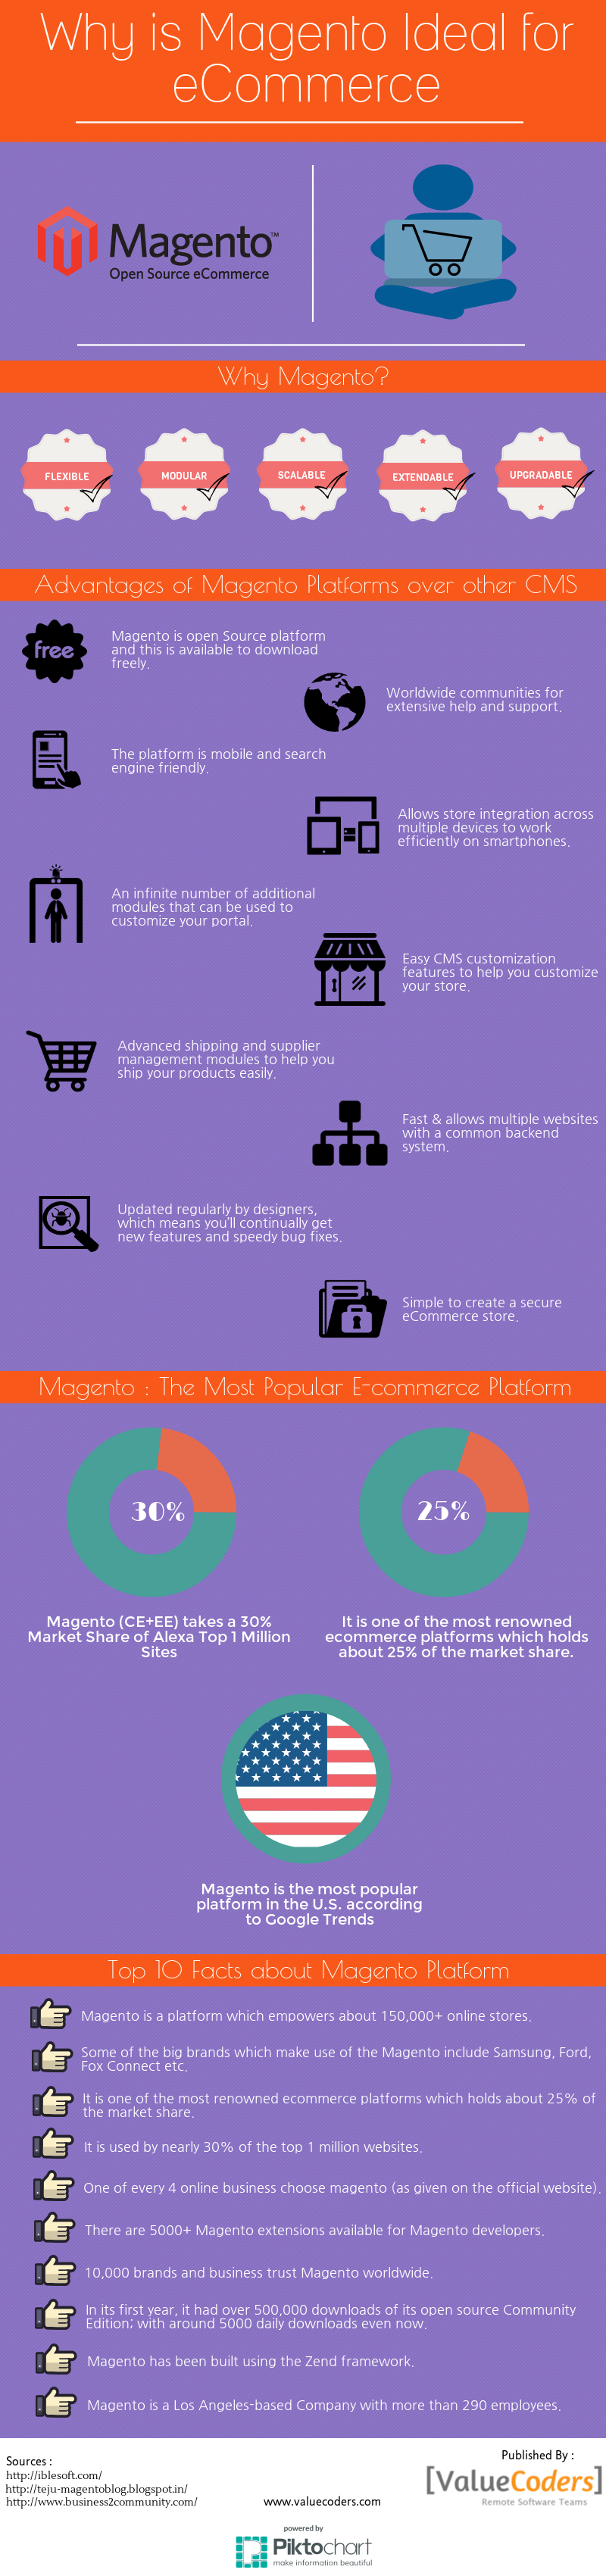 magento for ecommerce platform